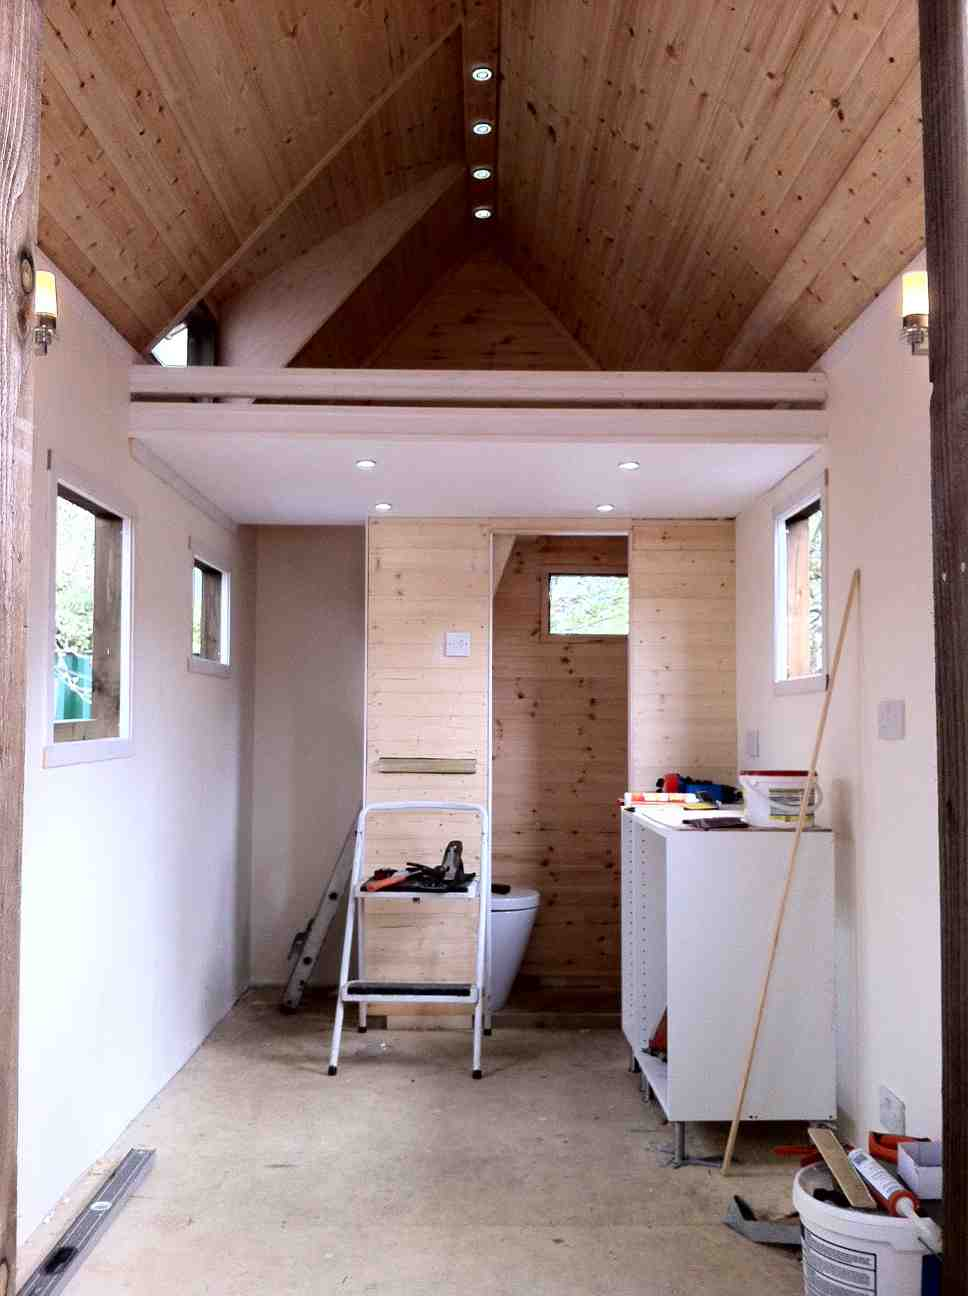 Shedworking: Tiny House School launched in UK